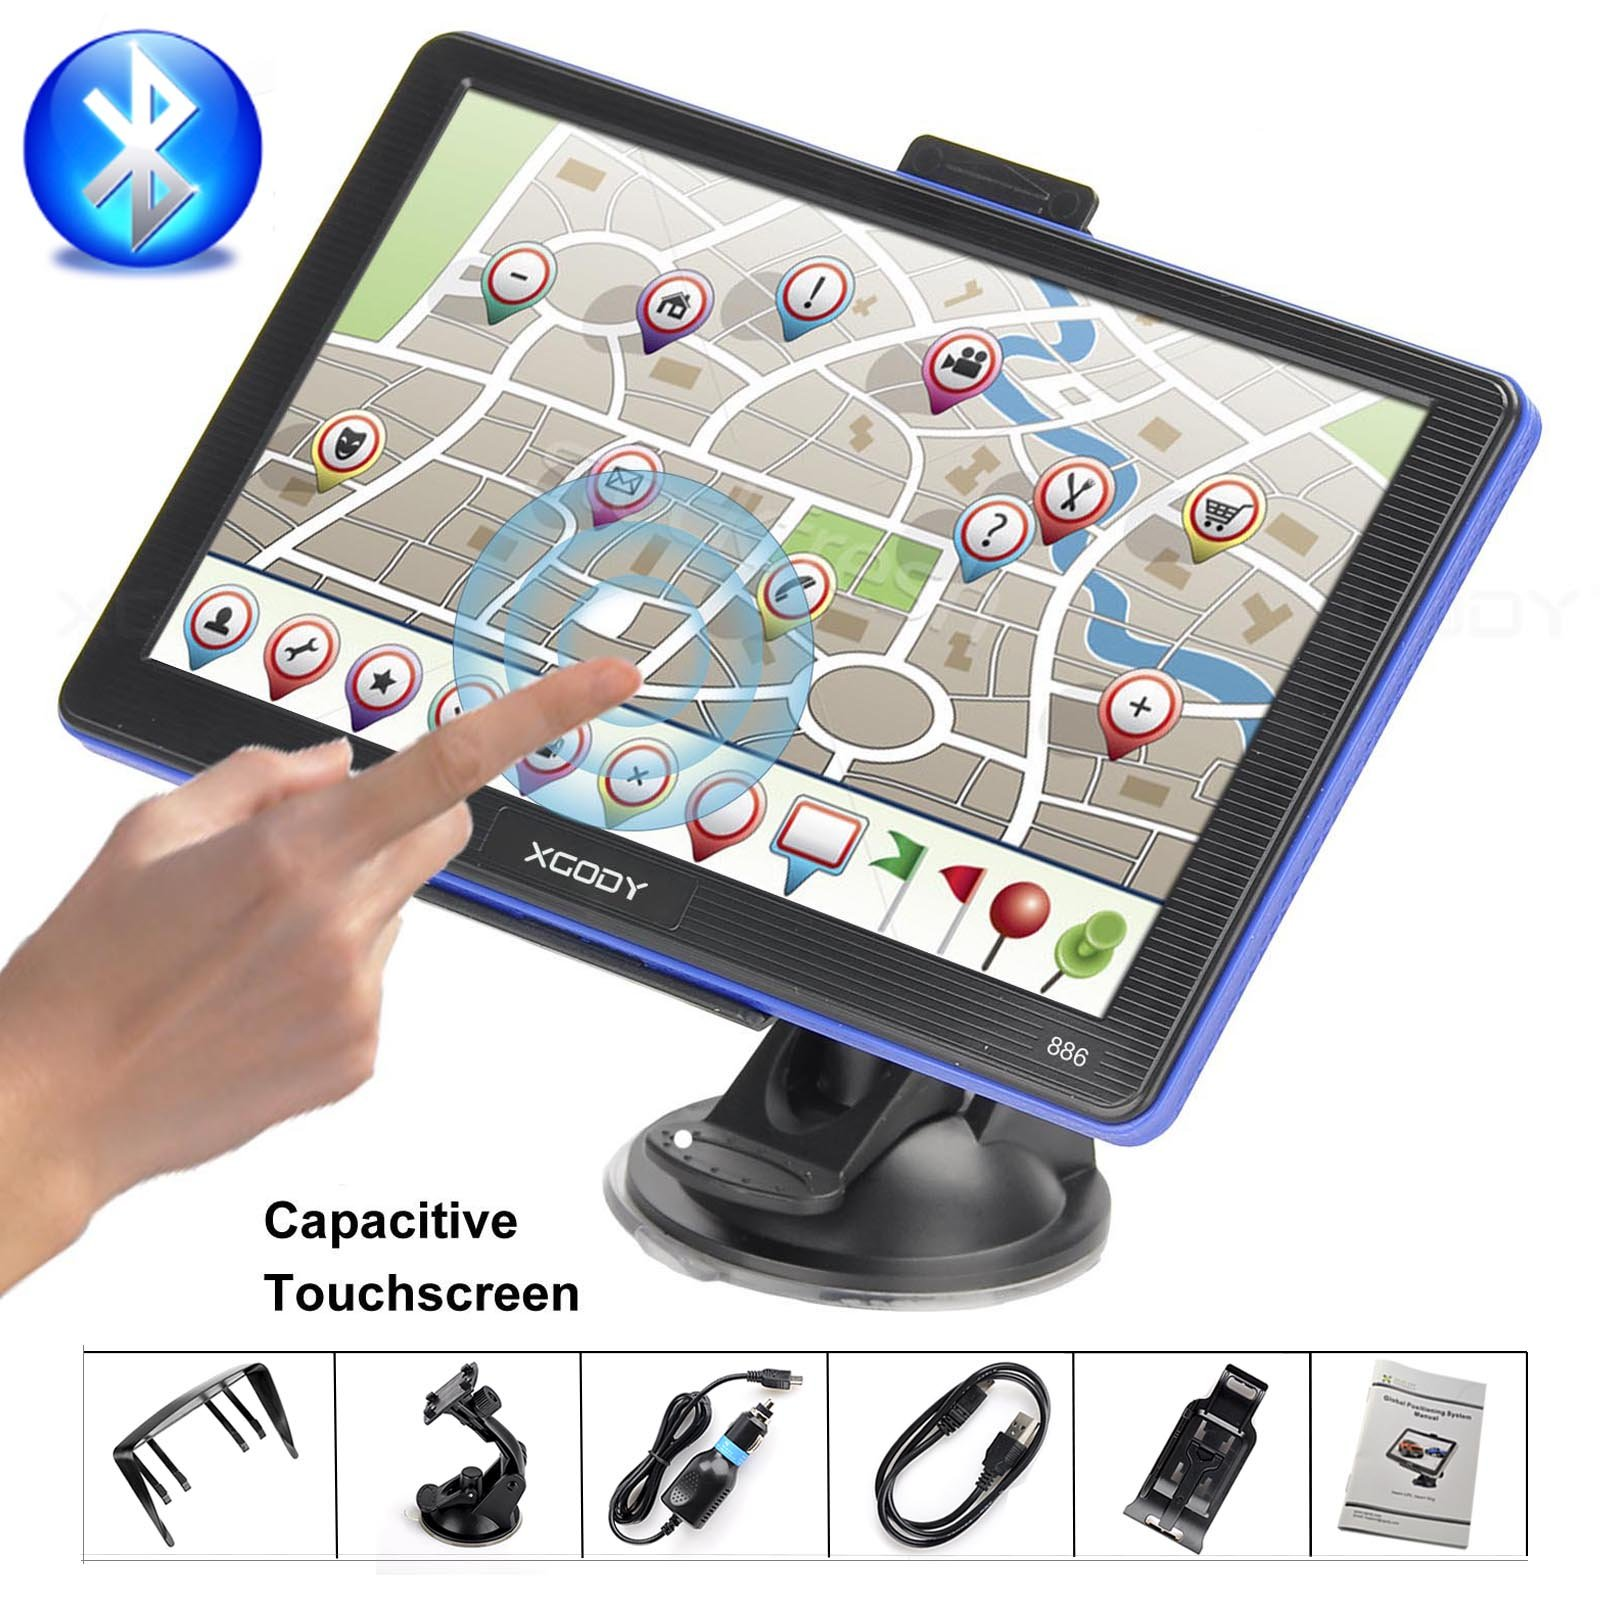 Xgody Portable Car Truck GPS Navigation 886 Support Bluetooth 7'' Capacitive Touchscreen 256MB RAM 8GB ROM NAV System Navigator with Sun Shade Lifetime Maps Updates Spoken Turn-By-Turn Directions